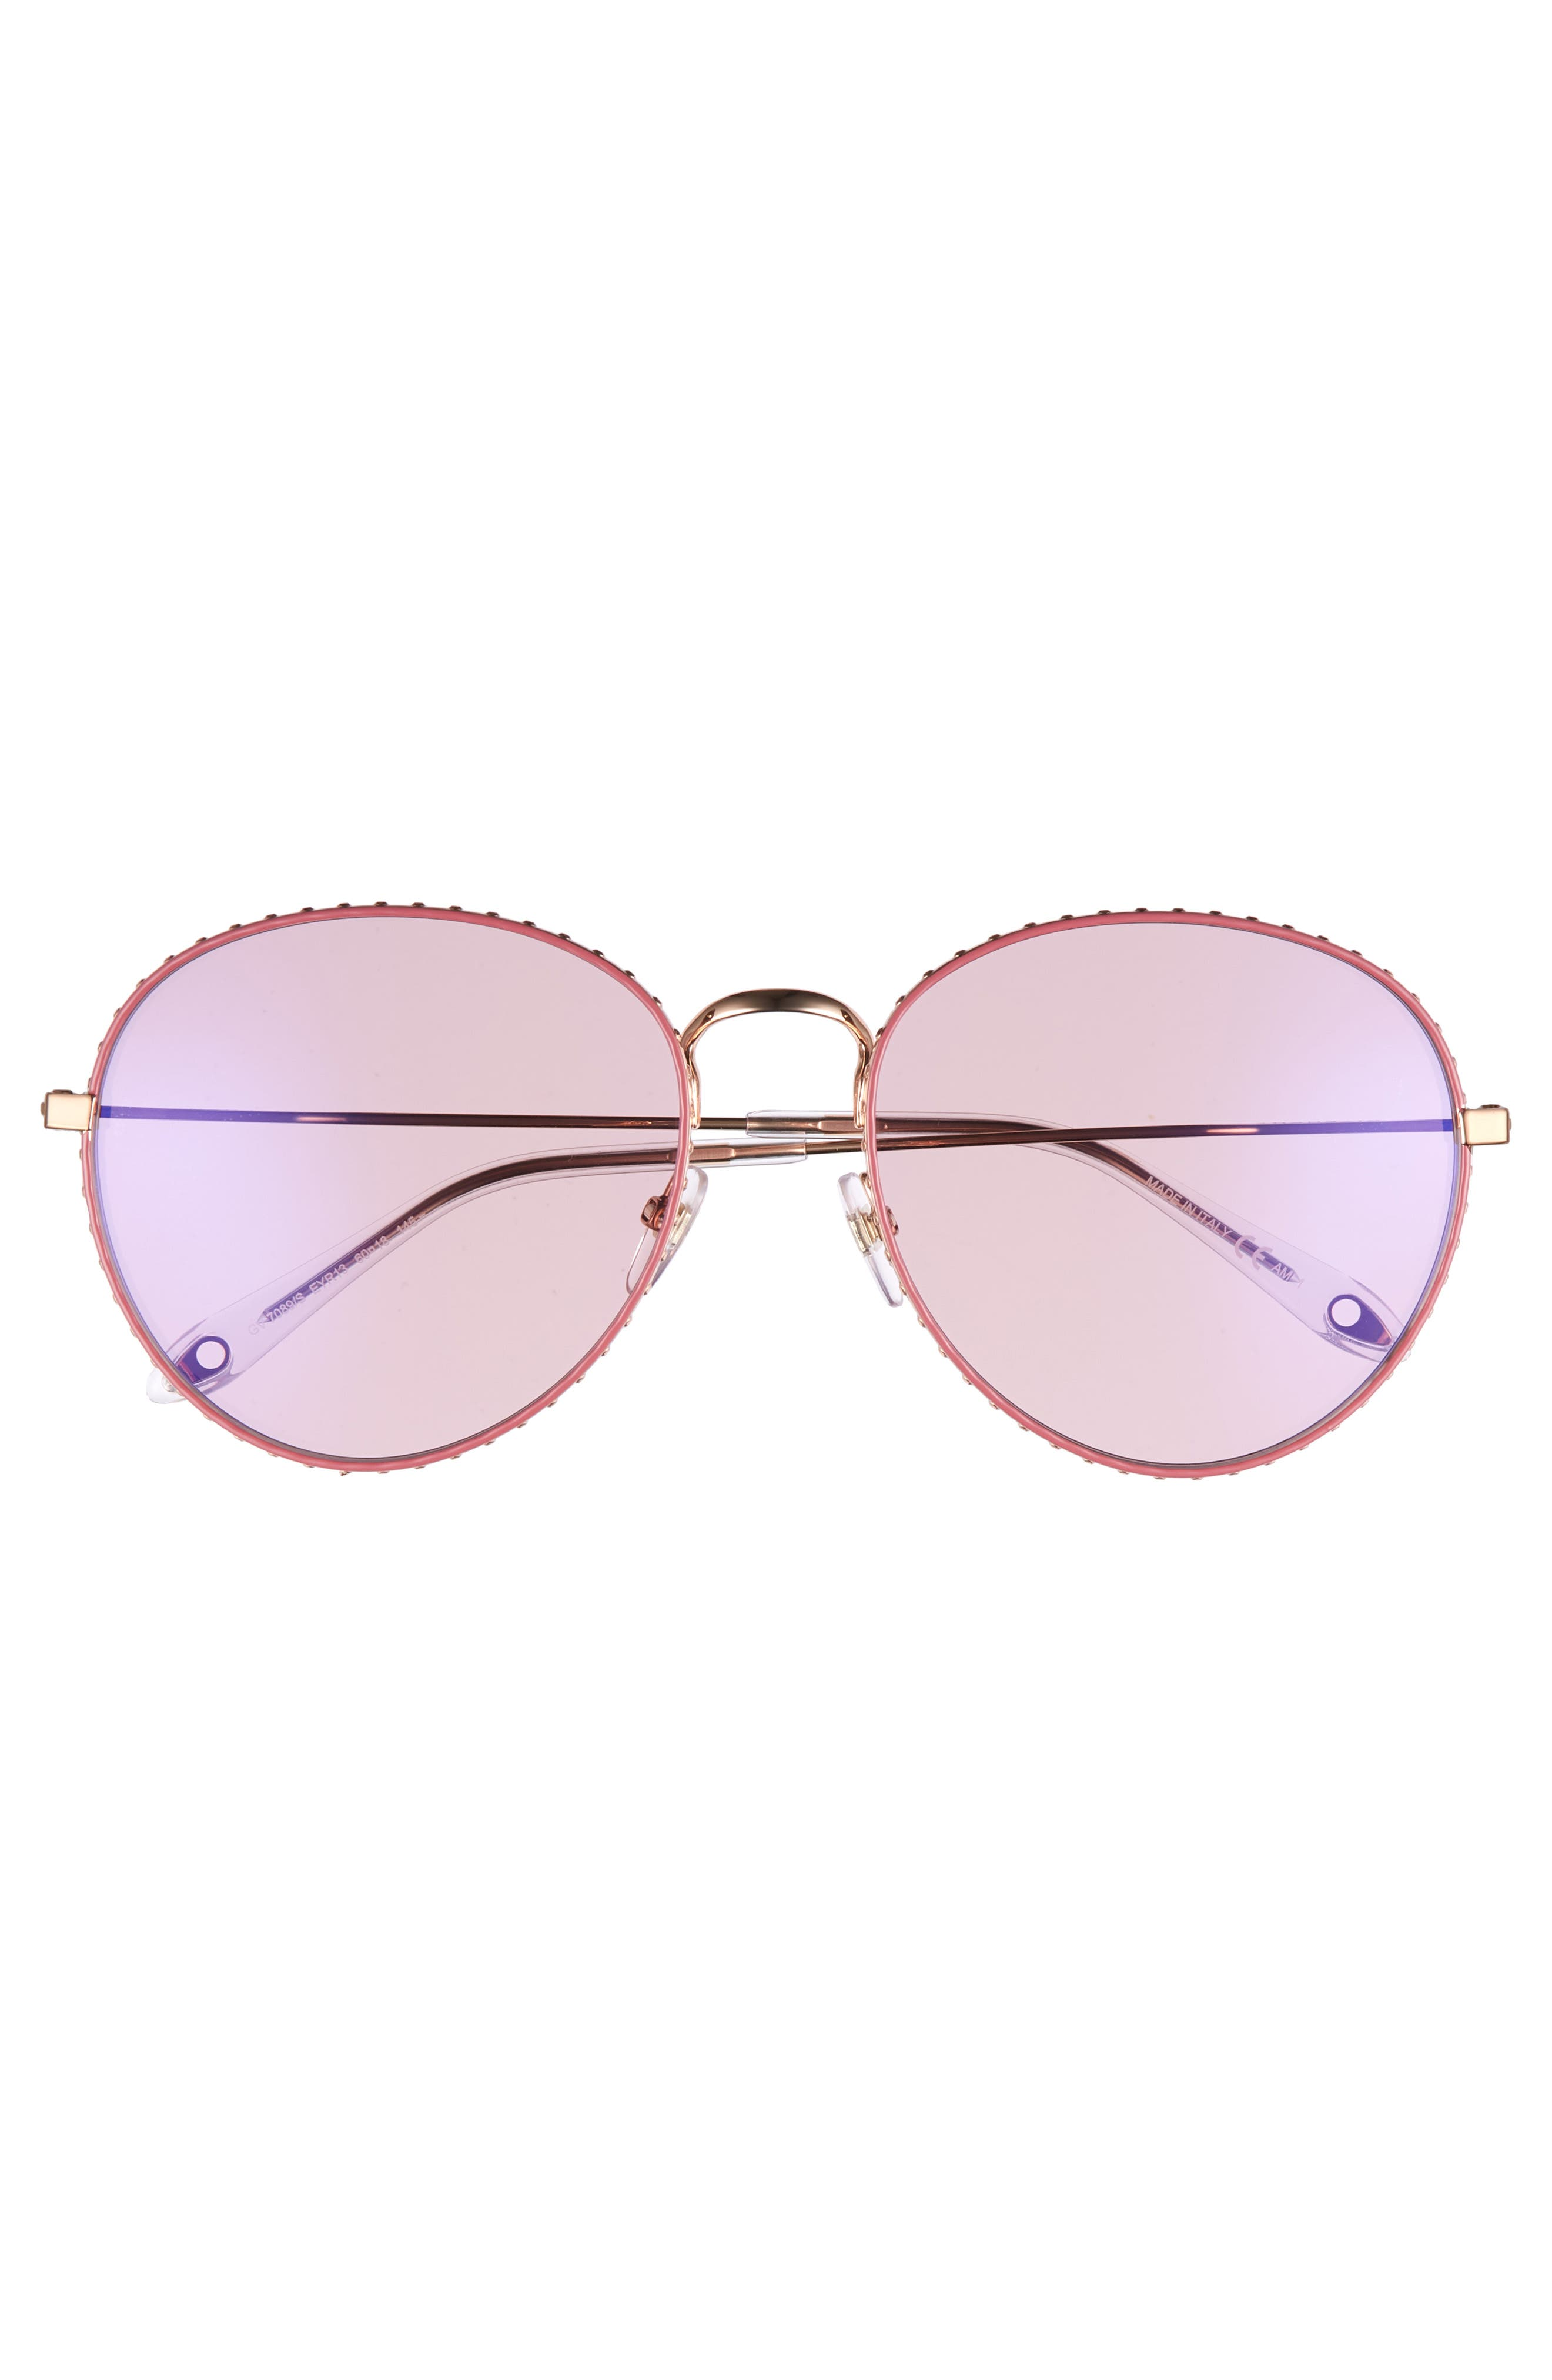 60mm Round Metal Sunglasses,                             Alternate thumbnail 3, color,                             710